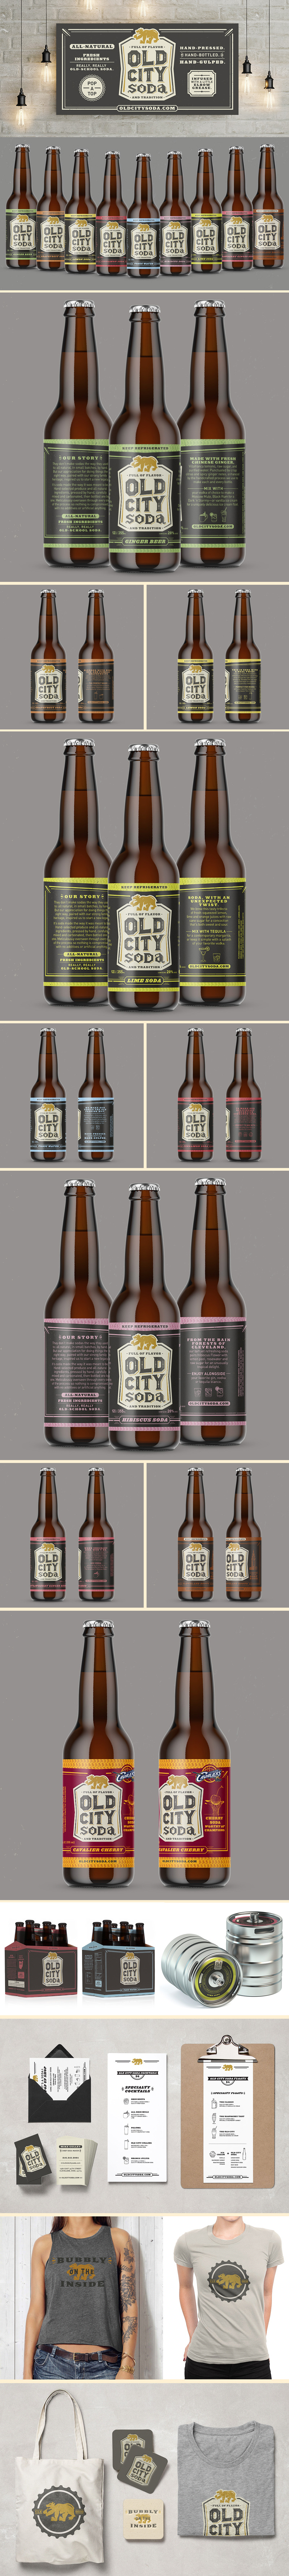 Old City Soda branding and packaging design, custom typography by Riddle Design Co. graphic design studio in Richmond, Virginia